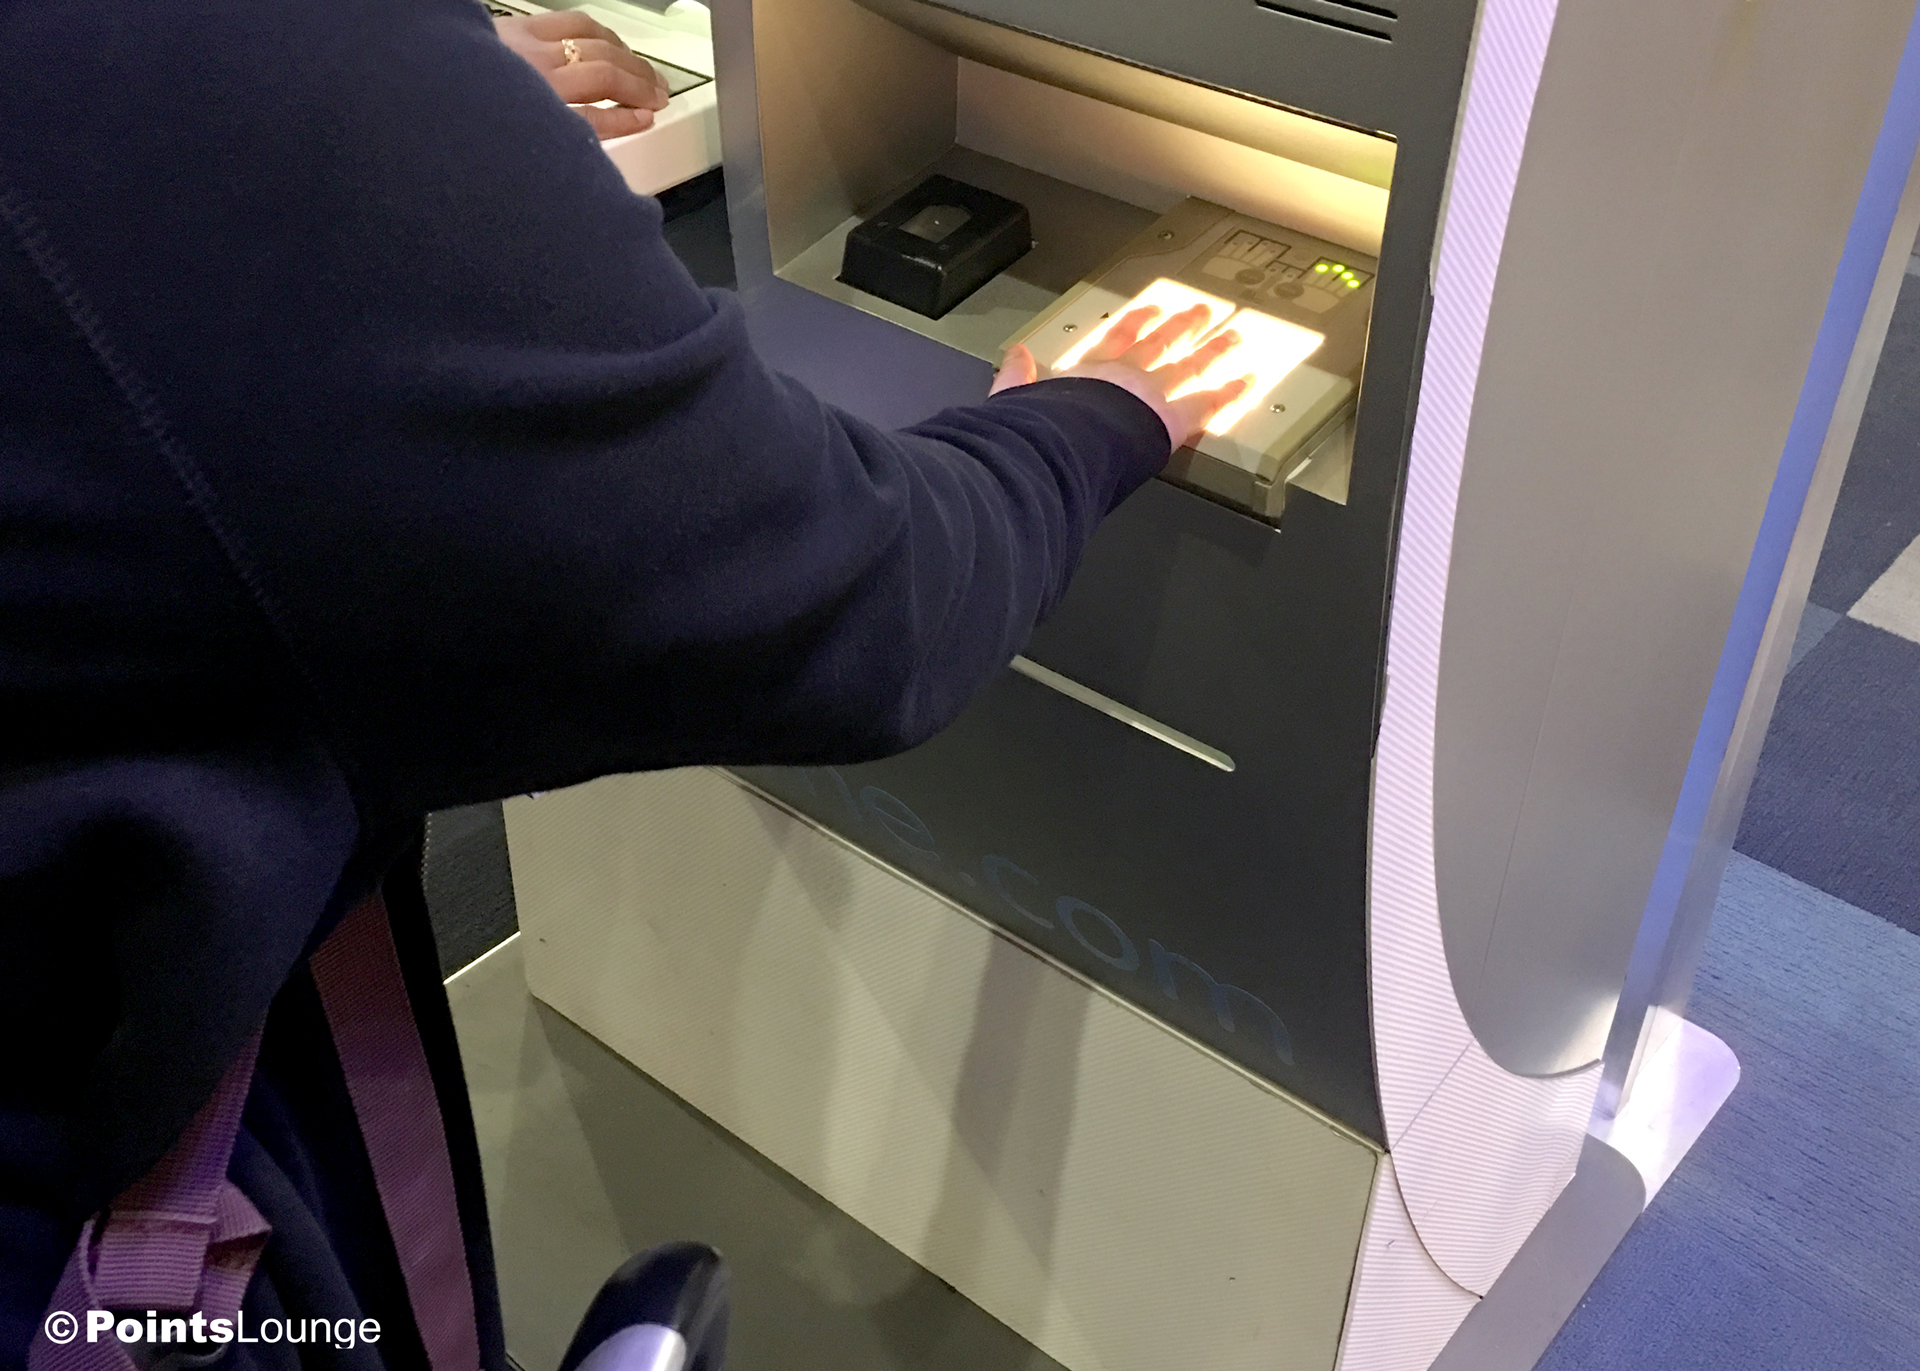 A new CLEAR member has her fingerprints scanned the CLEAR enrollment center at Las Vegas McCarran Airport.